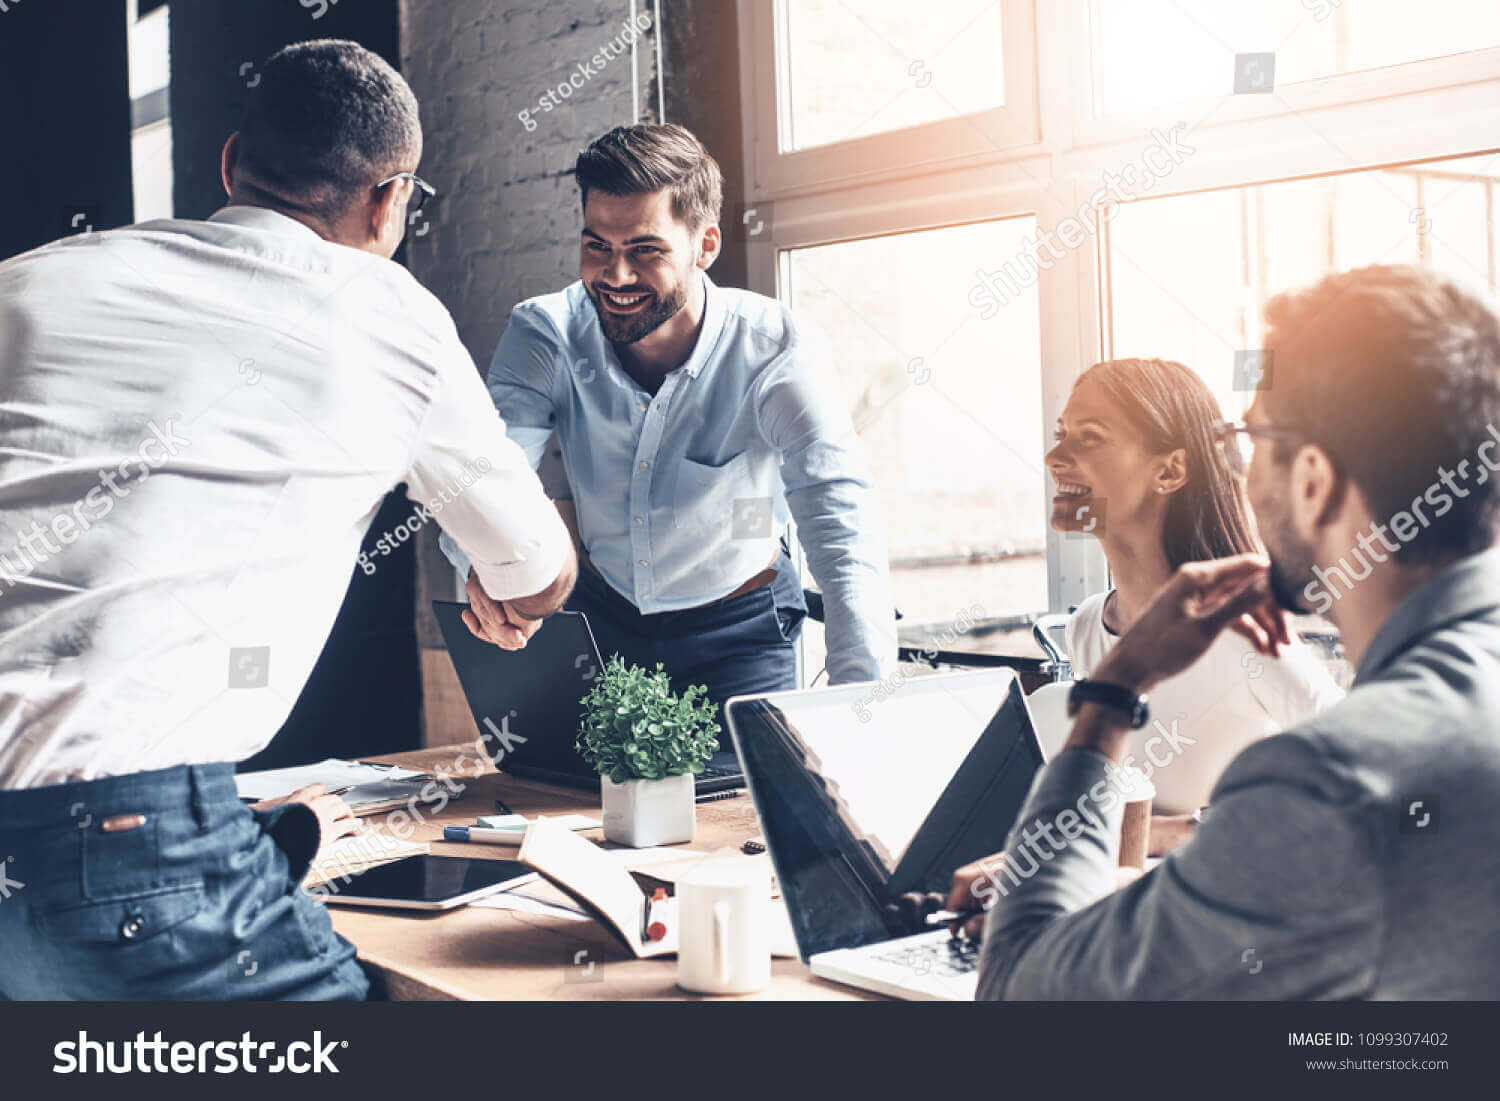 stock-photo-glad-to-work-with-you-young-modern-men-in-smart-casual-wear-shaking-hands-and-smiling-while-1099307402